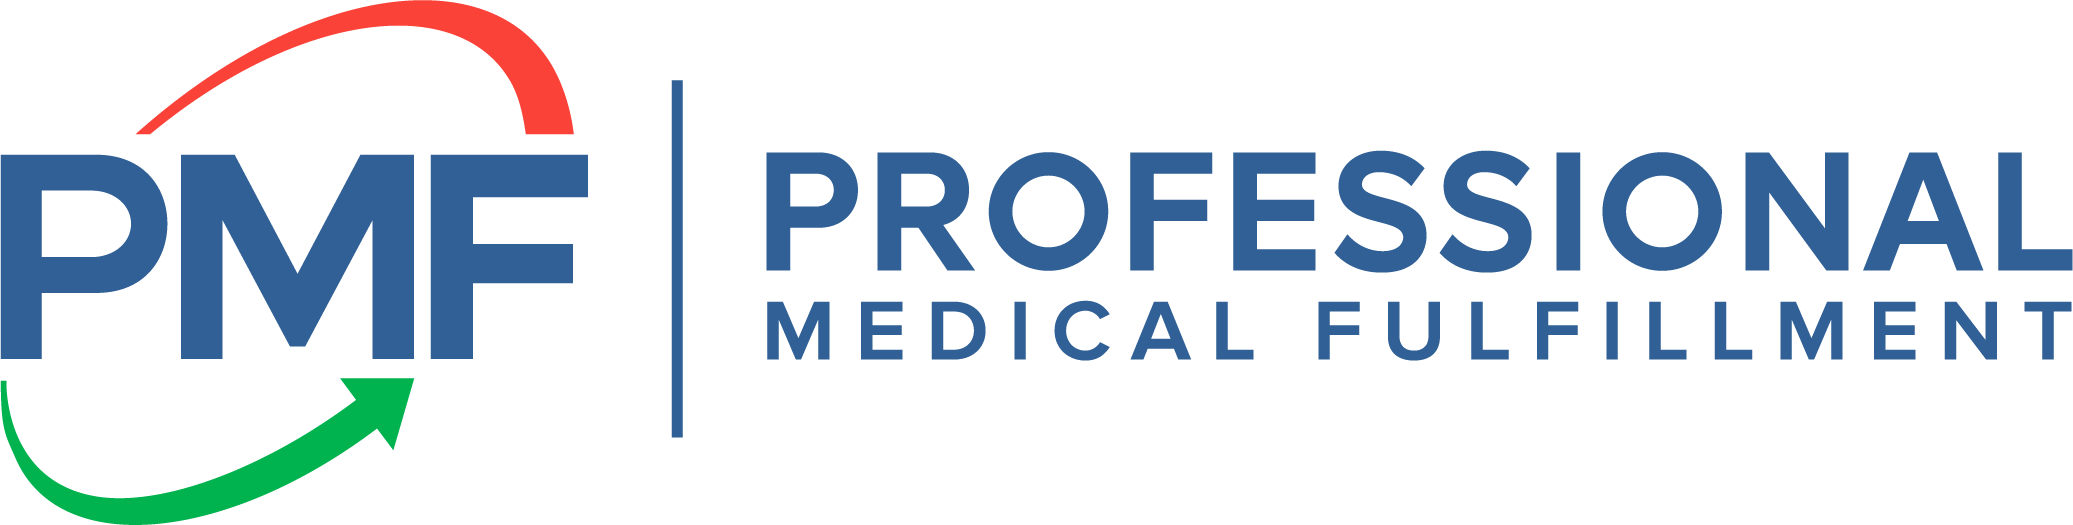 PMF - Professional Medical Fulfillment